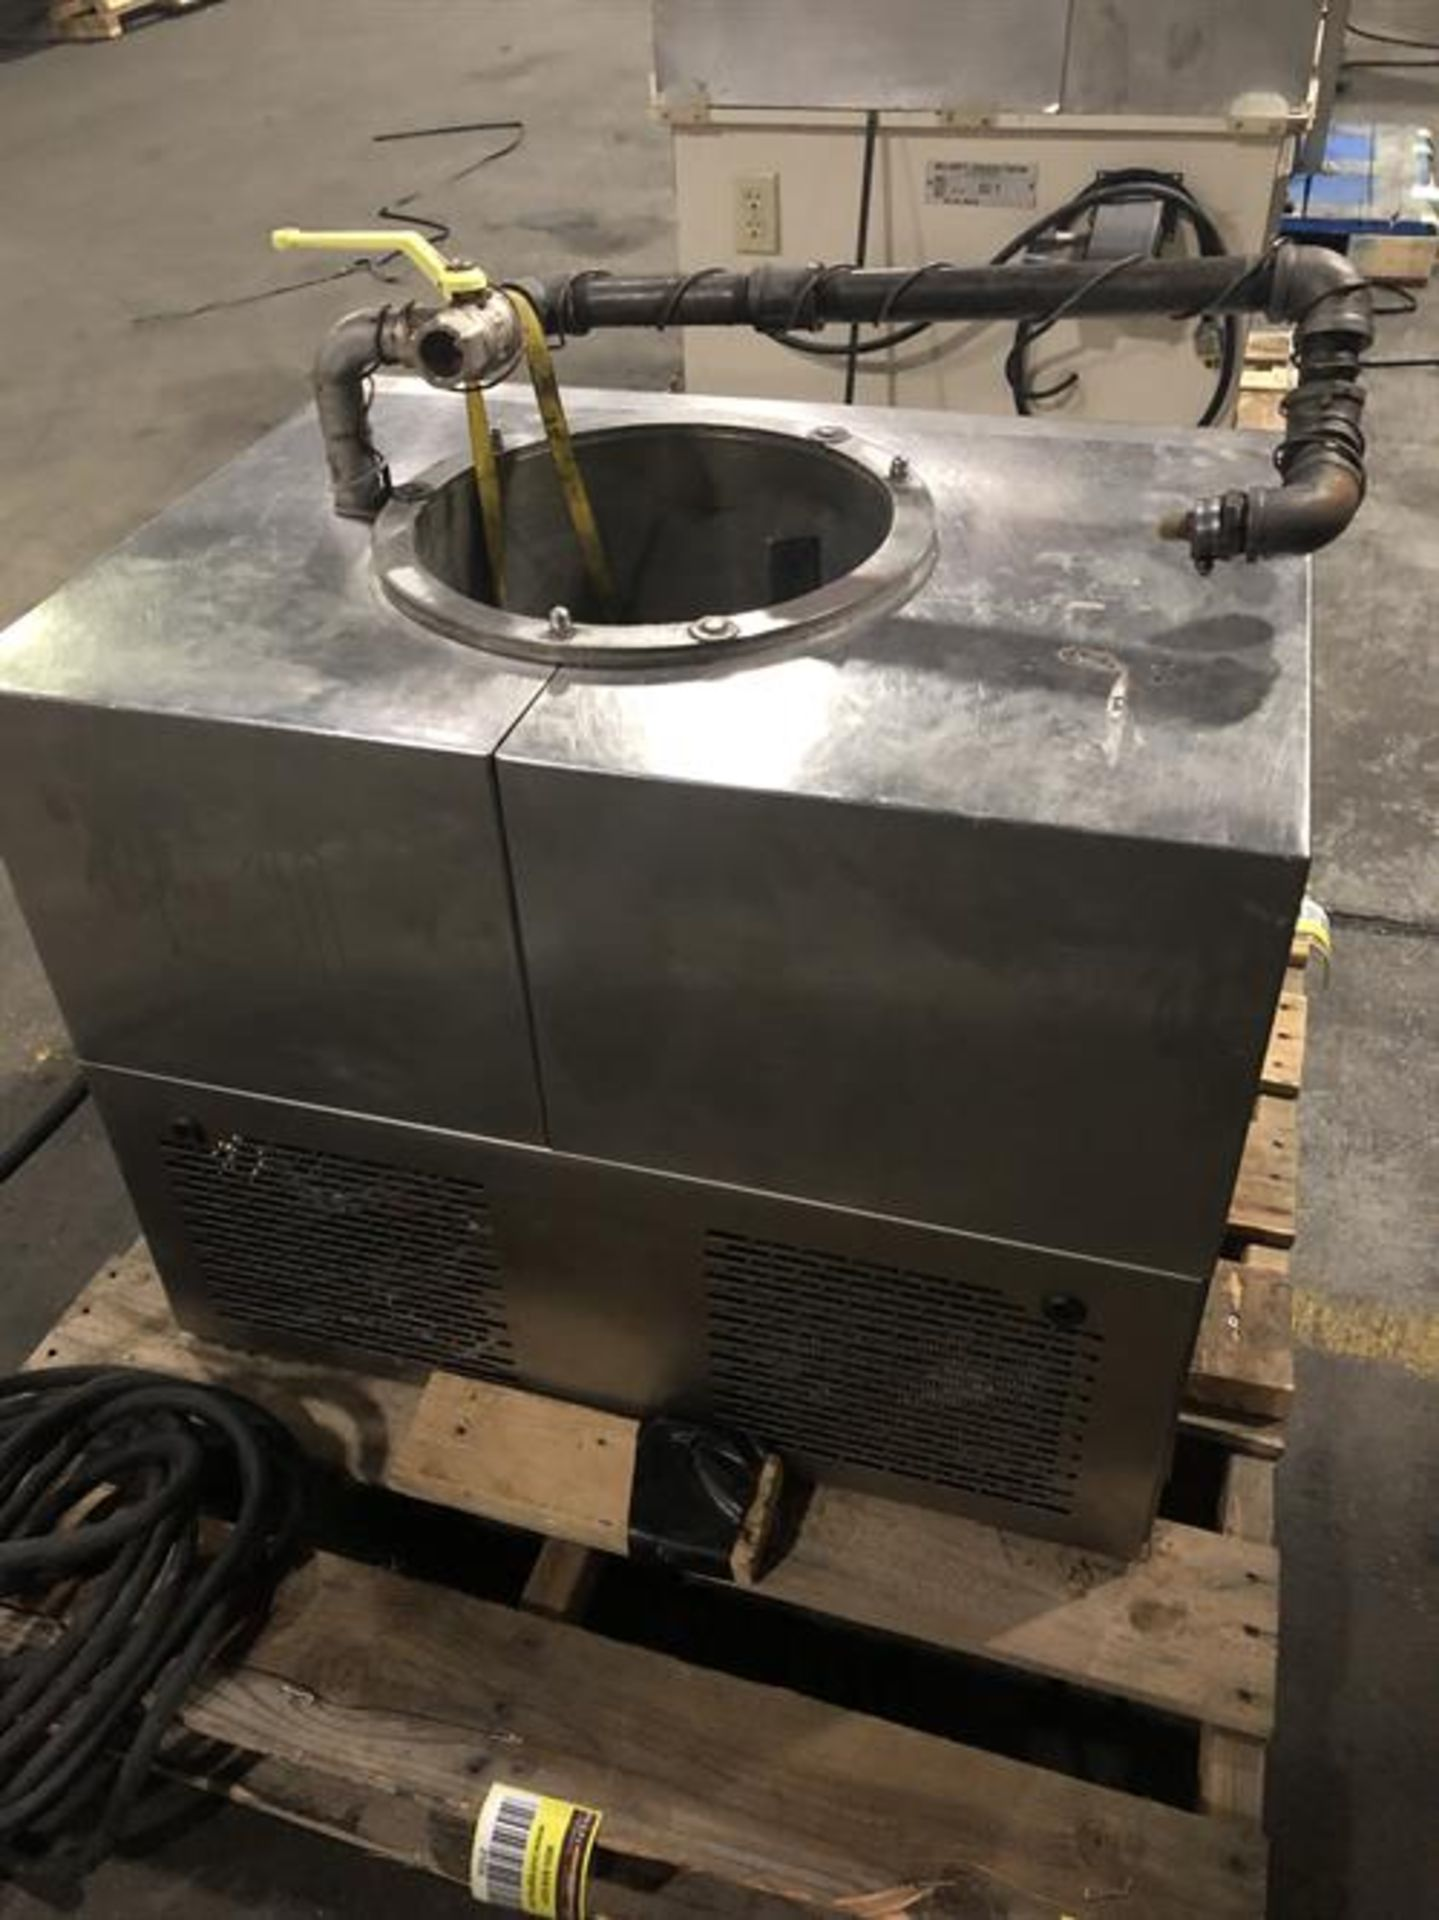 Sollich Model TF 100 Tempering Unit - Serial number 2682 - Built new in 1998 - 80kg/hour - Image 3 of 6